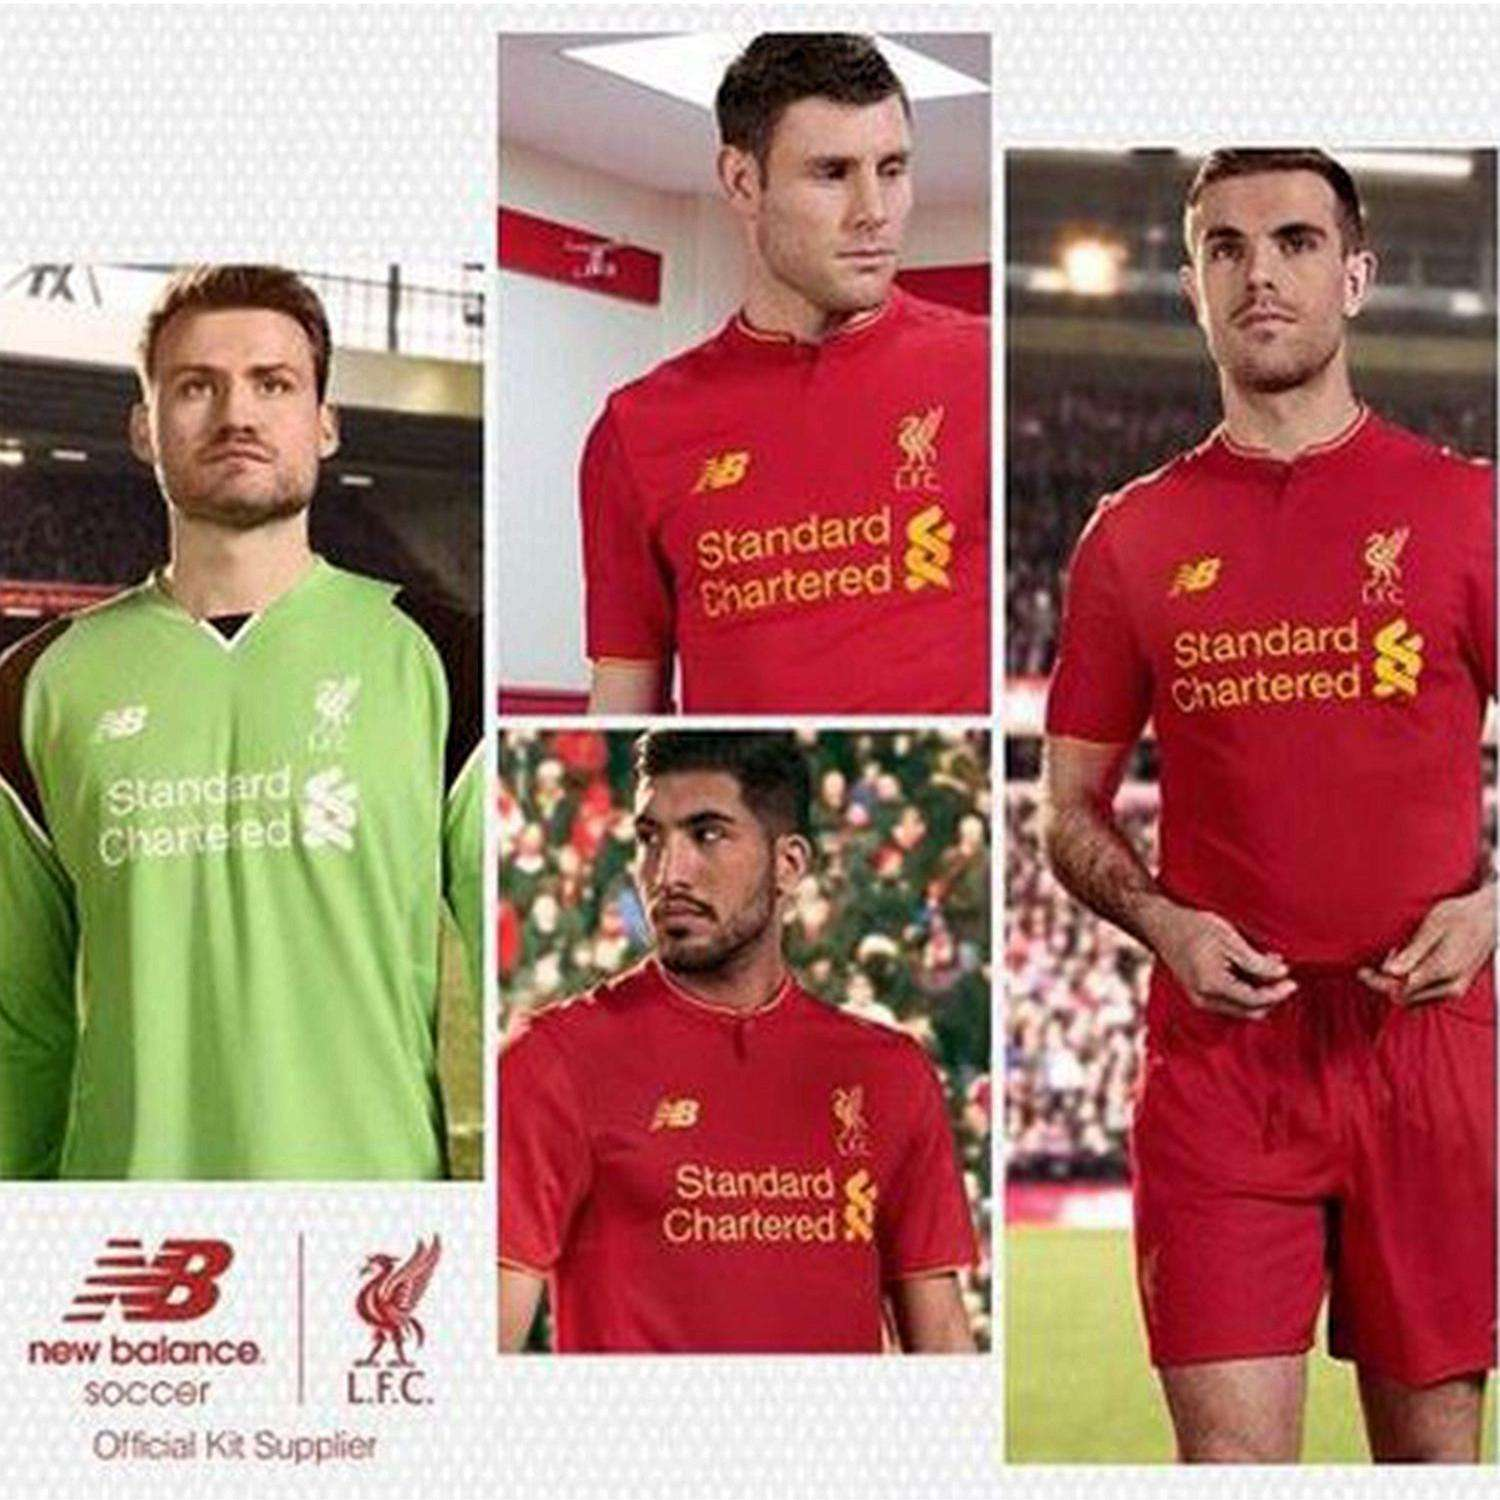 Liverpool-Kit. In what looks to be leaked New Balance promotional material,  we can see the new home shirt of the Anfield based side has sharp, ...